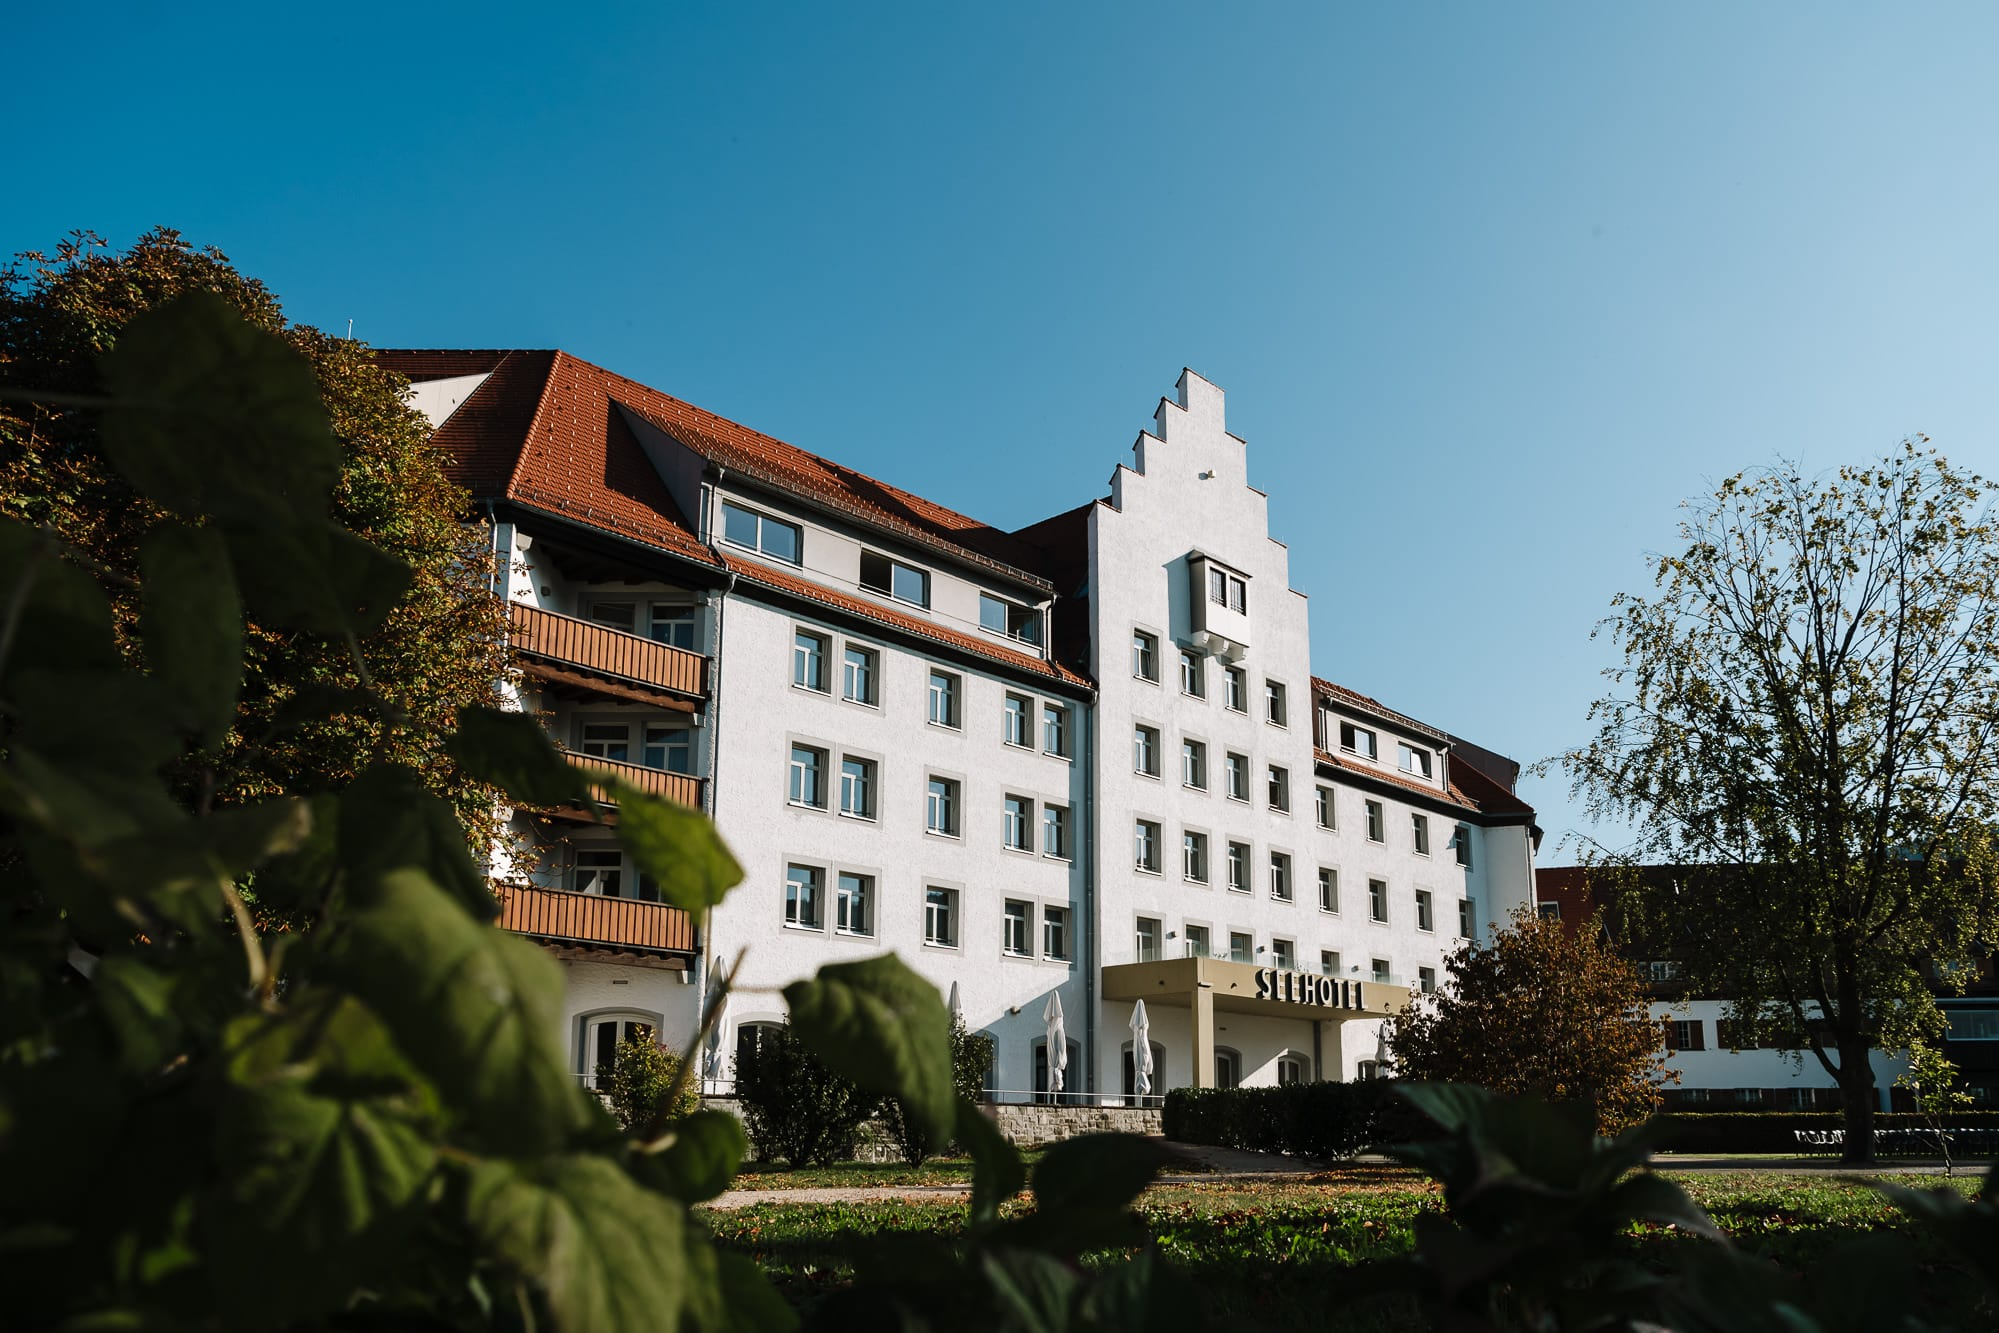 Photo of Seehotel on Lake Constance